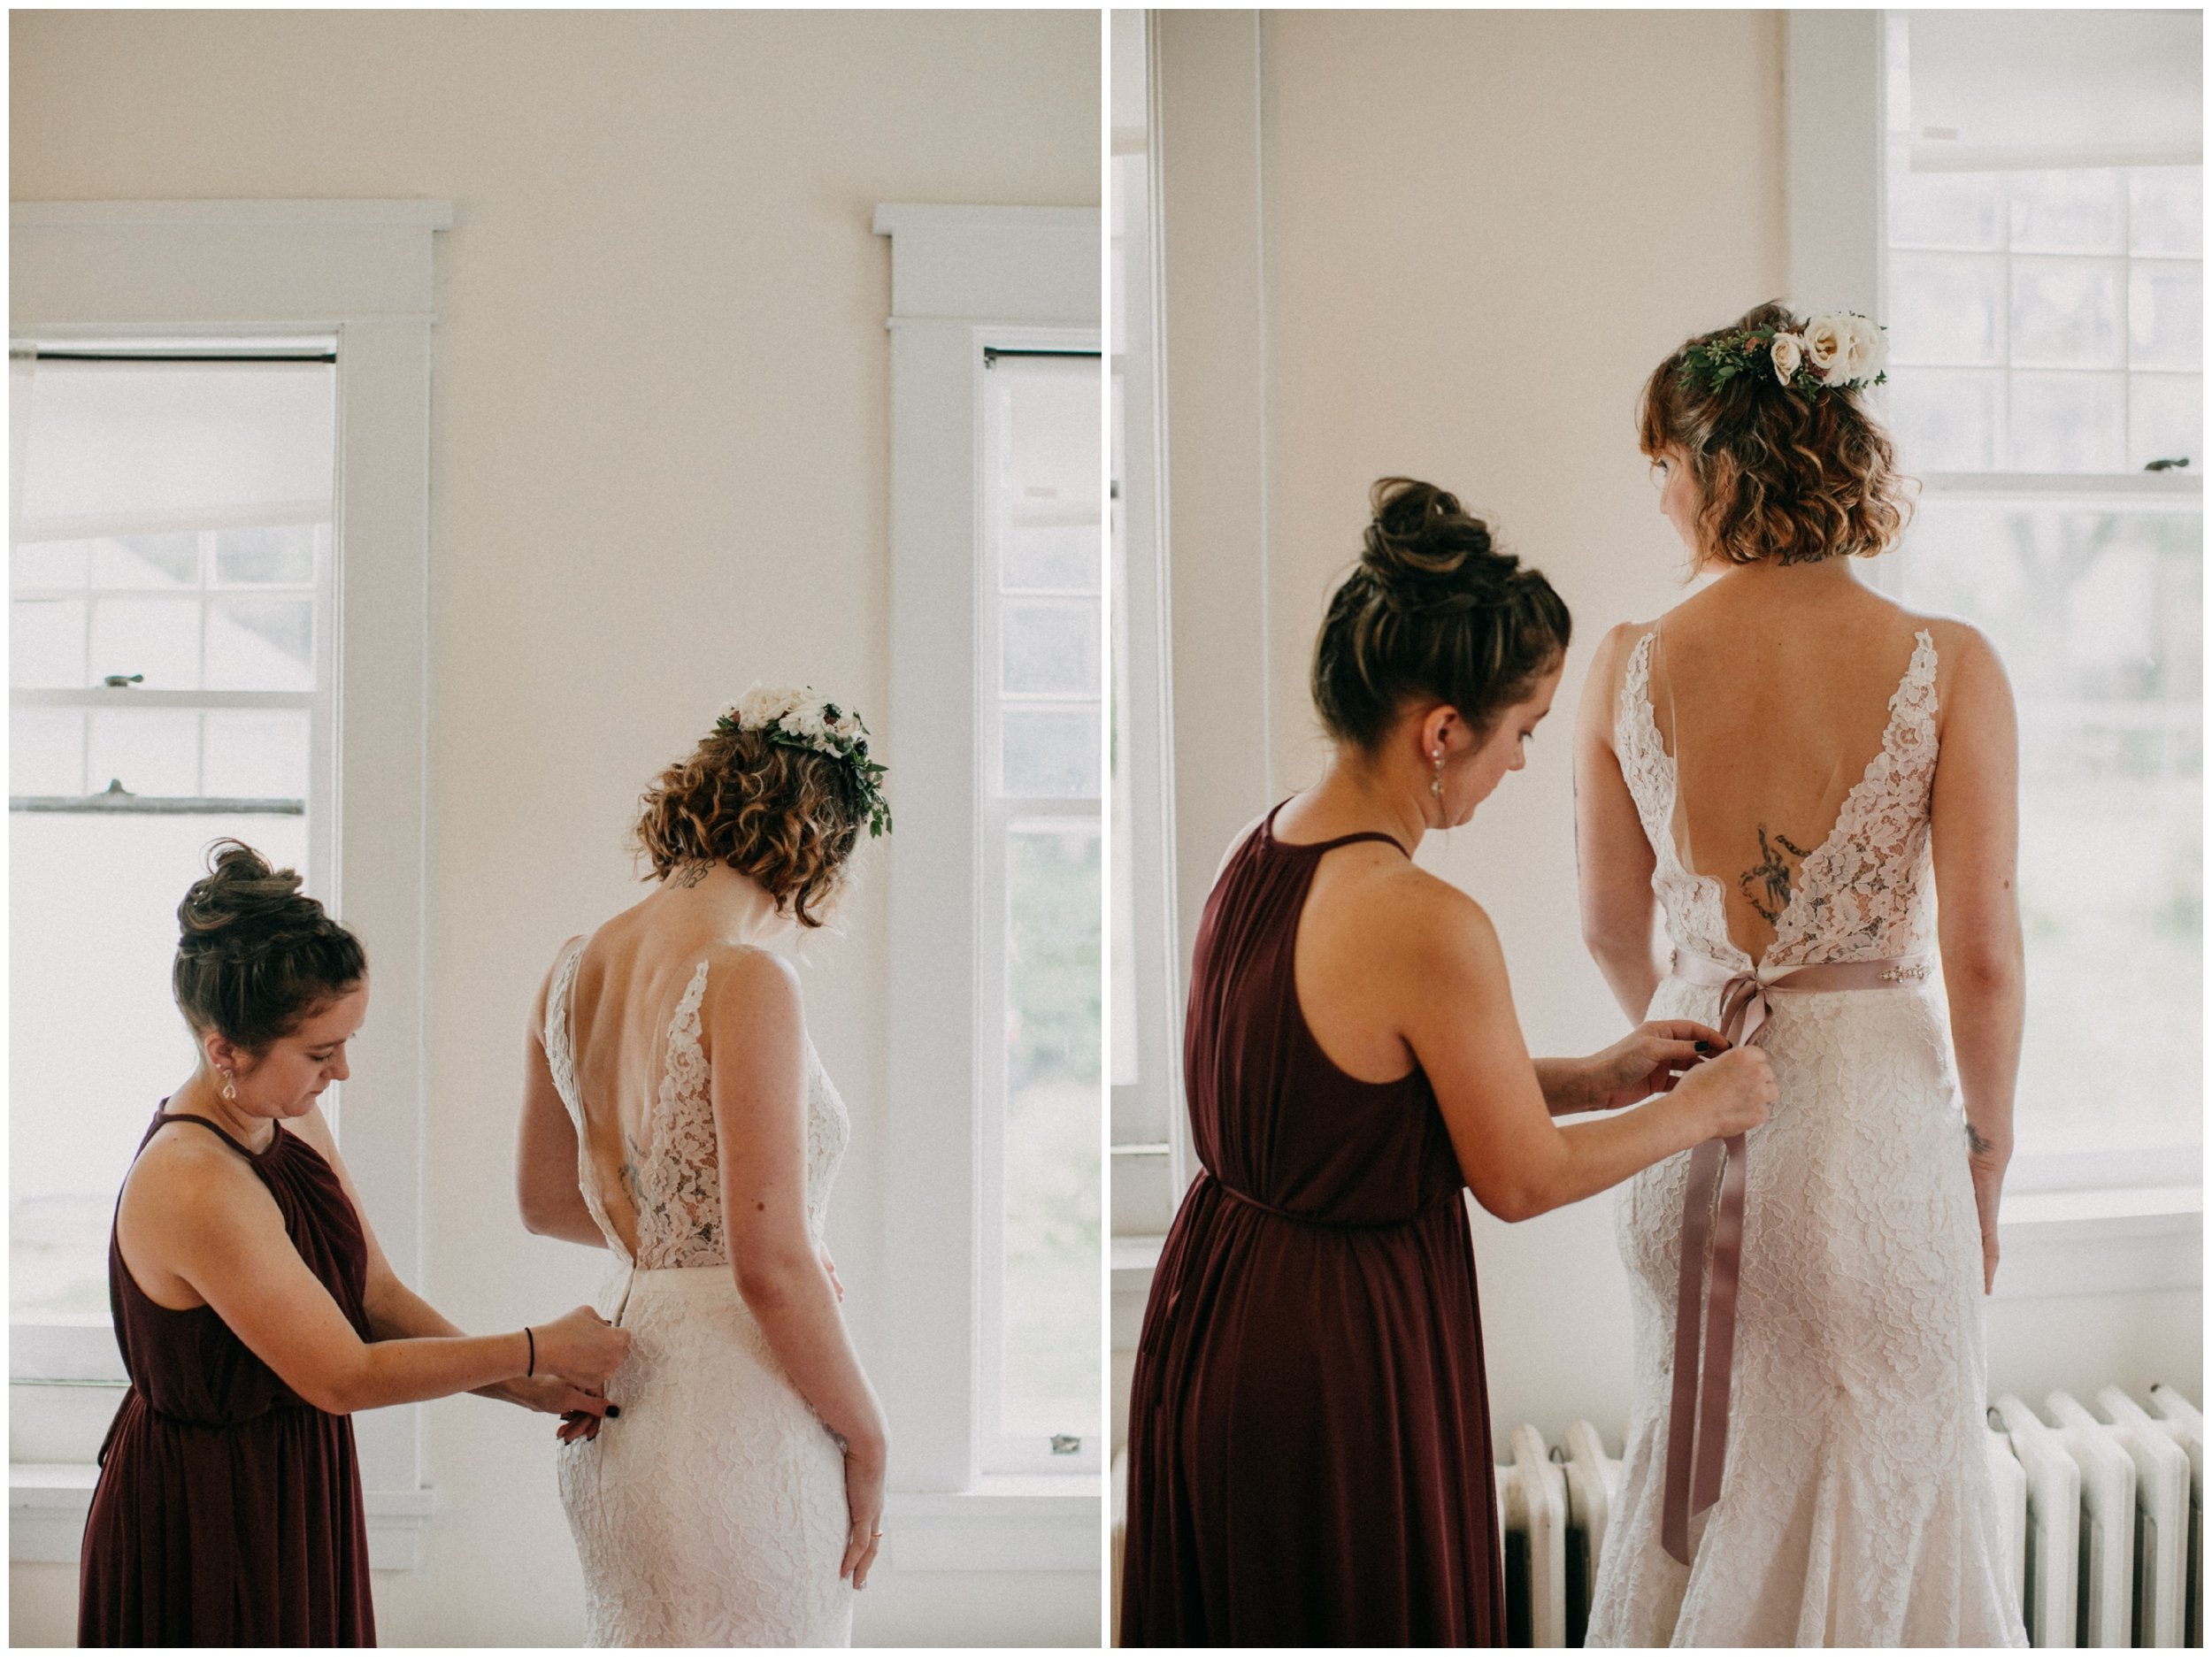 Bride getting into wedding dress at home in Duluth Minnesota